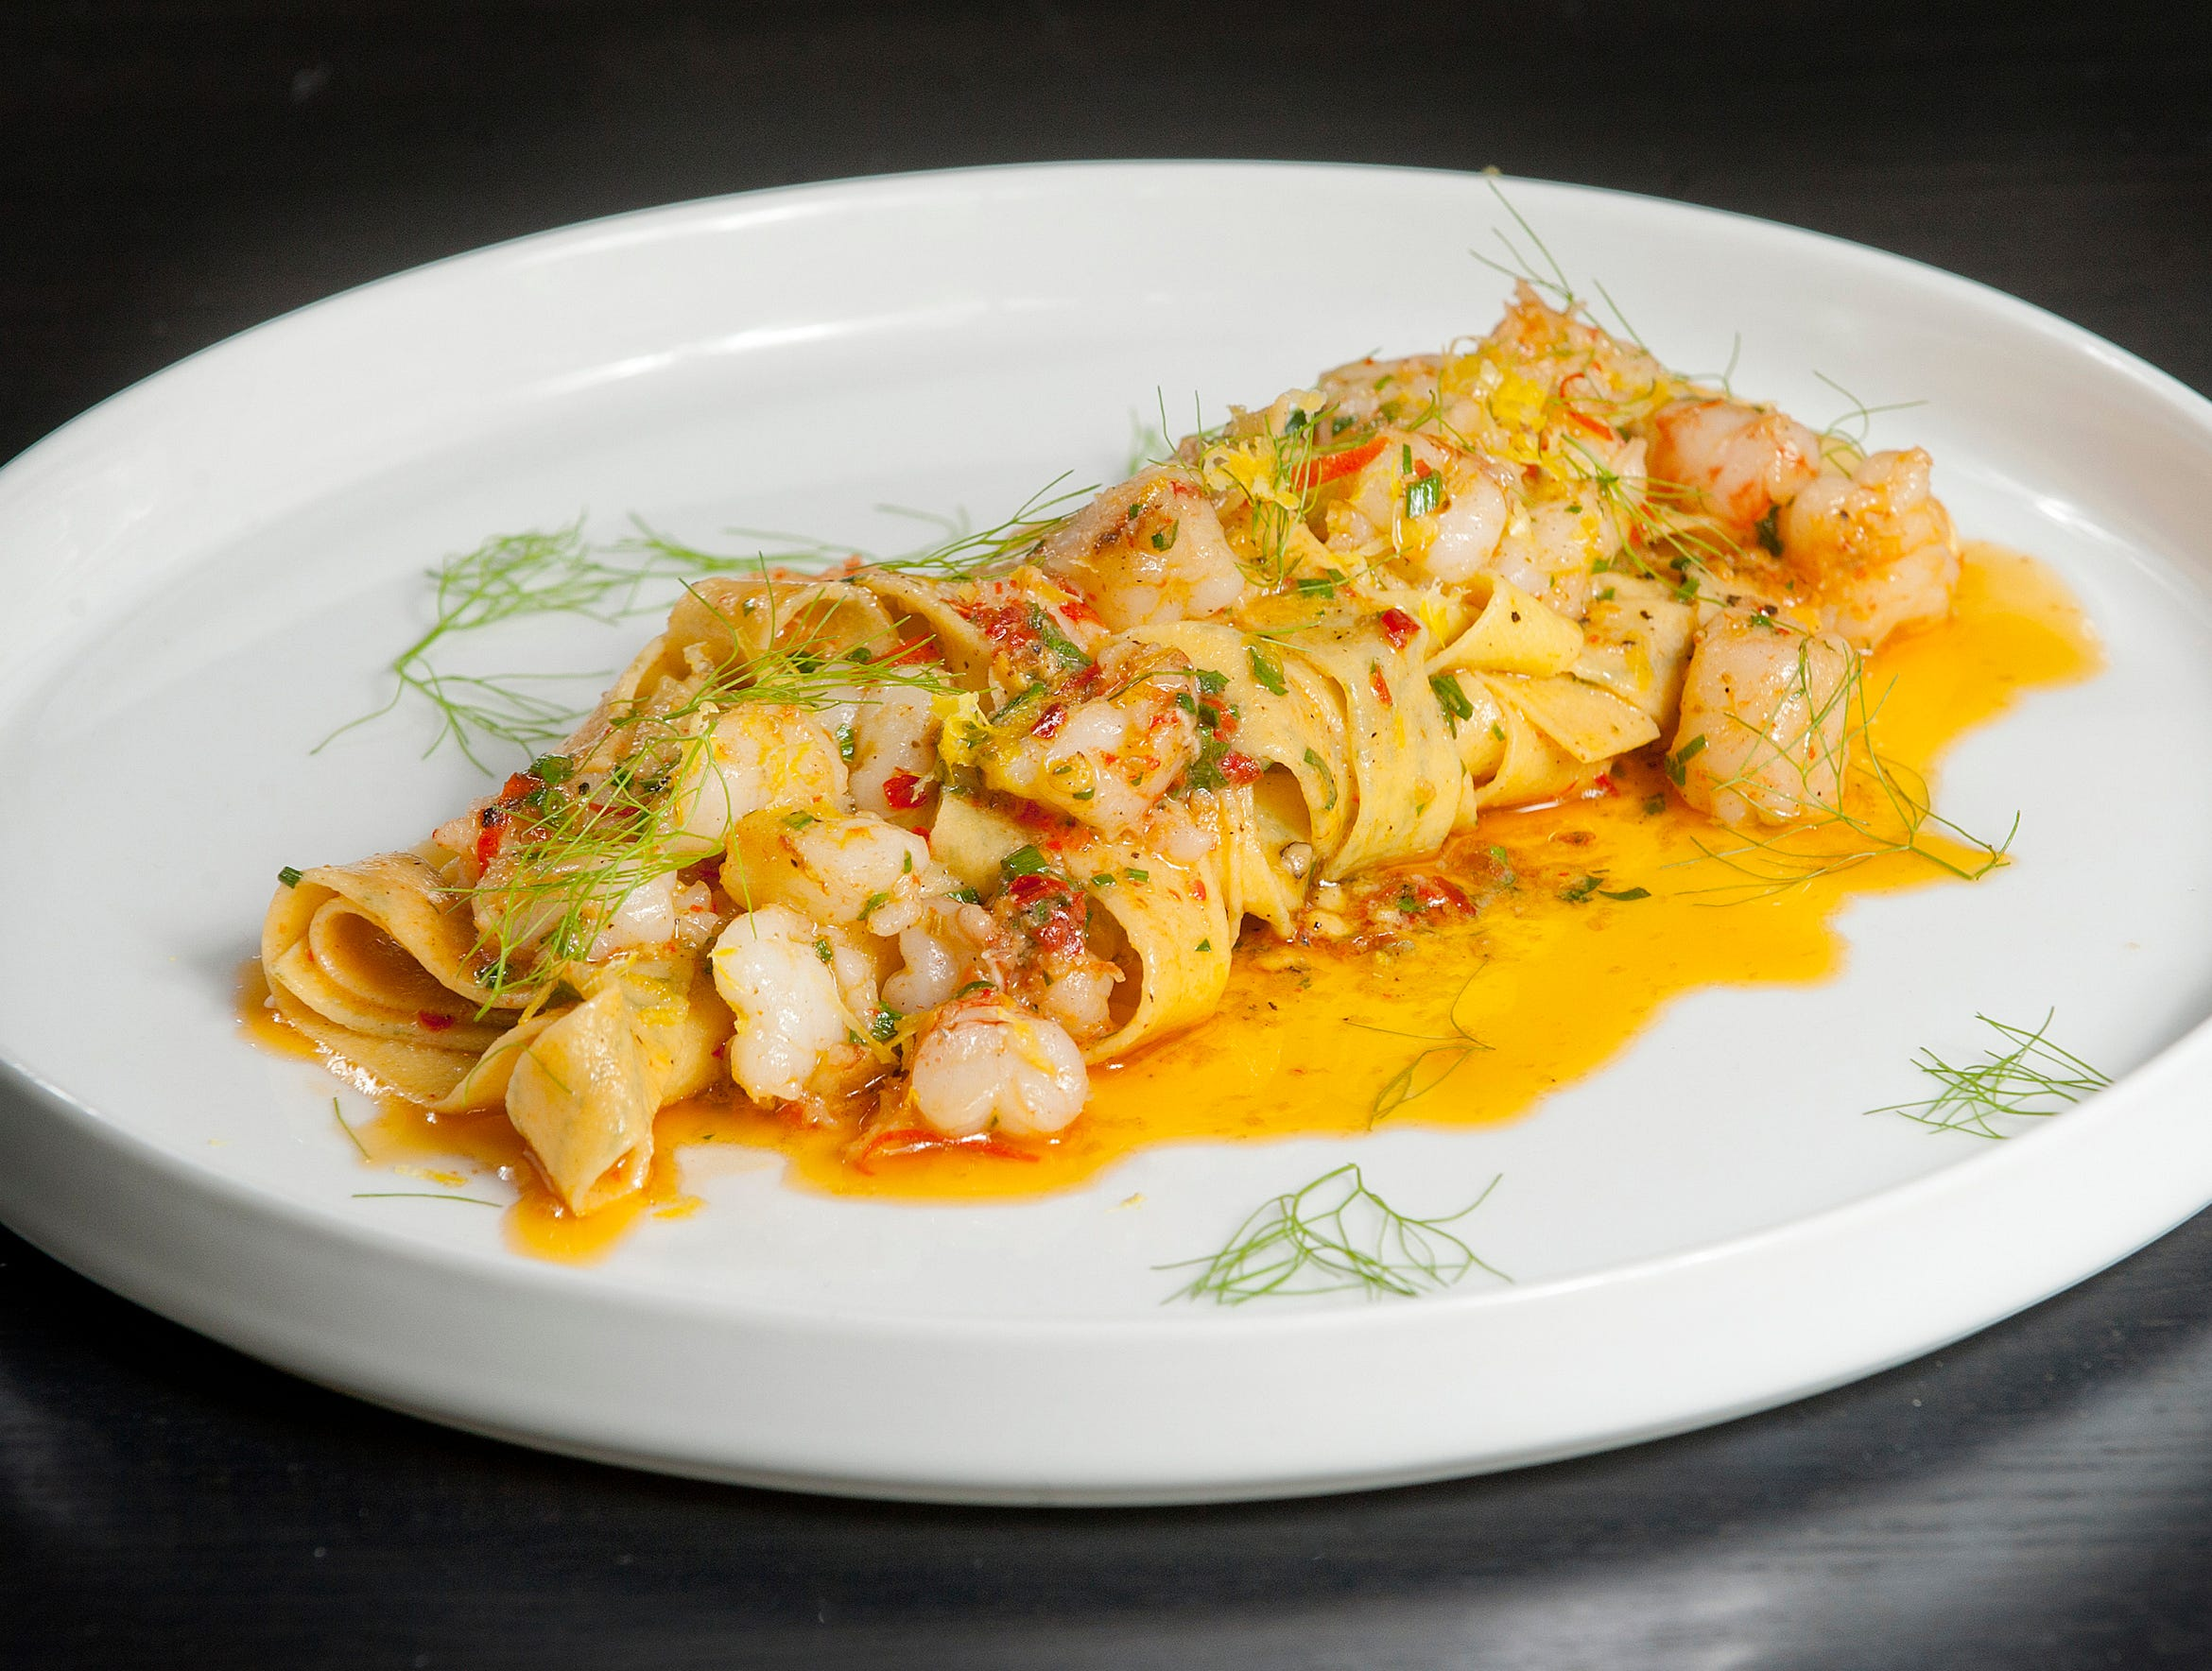 bar Vetti's Dill Taglierini is a made with taglierni (ribbon pasta), fresh dill, rock shrimp with garlic and olive oil, fennel, rosa marina and fermented chilies. July 10, 2018